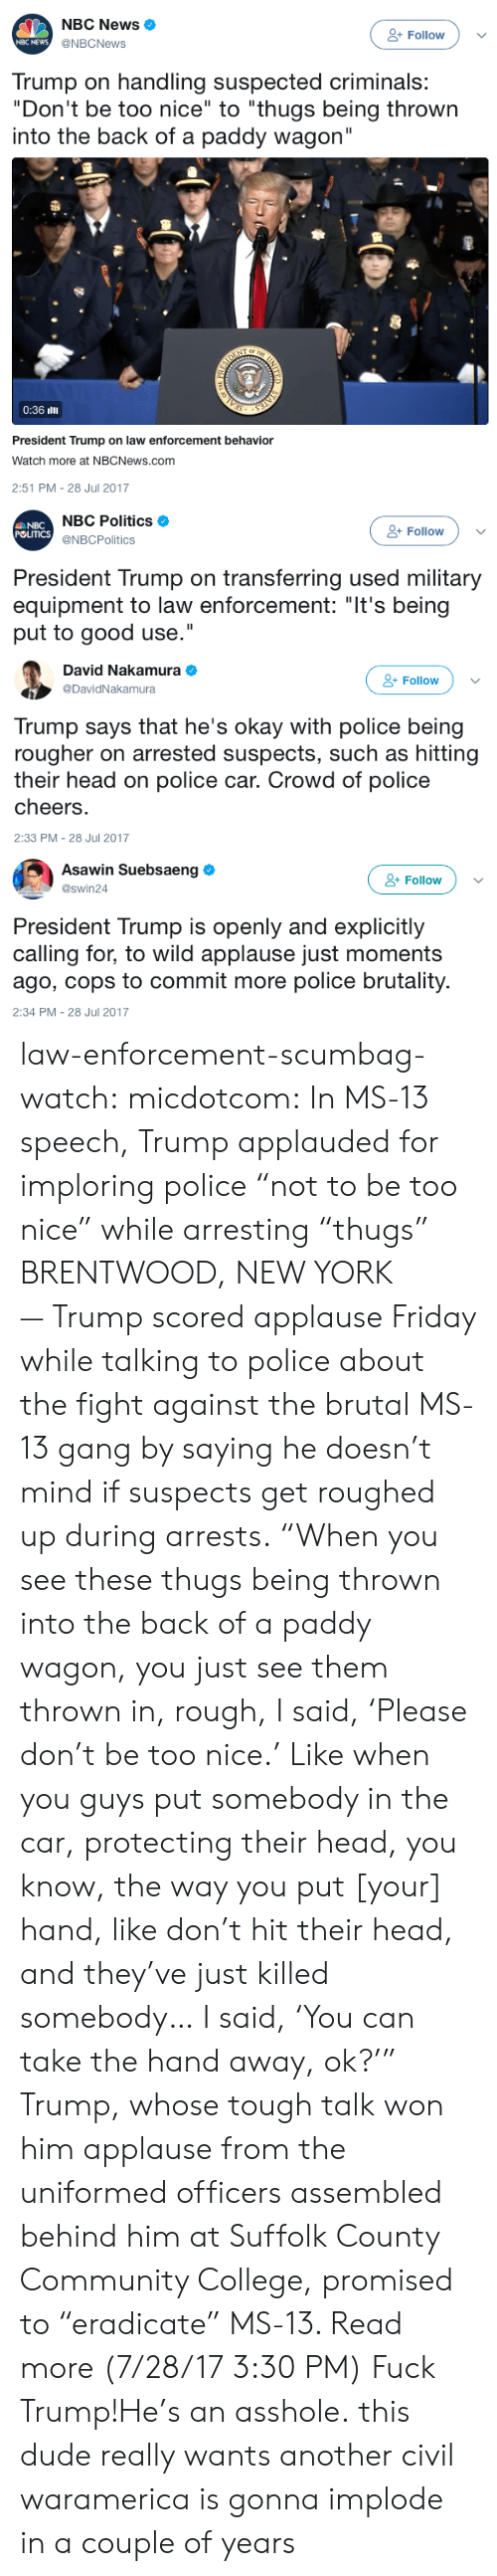 """America, College, and Community: NBC News  @NBCNews  & Follow  NBC NEWs  Trump on handling suspected criminals:  """"Don't be too nice"""" to """"thugs being thrown  into the back of a paddy wagon""""  츌  0:36 illl  President Trump on law enforcement behavior  Watch more at NBCNews.com  2:51 PM-28 Jul 2017   NBC  POLITICS  NBC Politics  @NBCPolitics  & Follow  President Trump on transferring used military  equipment to law enforcement: """"It's being  put to good use.""""   David Nakamura  @DavidNakamura  Follow  Trump says that he's okay with police being  rougher on arrested suspects, such as hitting  their head on police car. Crowd of police  cheers  2:33 PM-28 Jul 2017   Asawin Suebsaeng  @swin24  & Follow  President Trump is openly and explicitly  calling for, to wild applause just moments  ago, cops to commit more police brutality  2:34 PM-28 Jul 2017 law-enforcement-scumbag-watch:  micdotcom: In MS-13 speech, Trump applauded for imploring police """"not to be too nice"""" while arresting """"thugs""""  BRENTWOOD, NEW YORK —Trump scored applause Friday while talking to police about the fight against the brutal MS-13 gang by saying he doesn't mind if suspects get roughed up during arrests. """"When you see these thugs being thrown into the back of a paddy wagon, you just see them thrown in, rough, I said, 'Please don't be too nice.' Like when you guys put somebody in the car, protecting their head, you know, the way you put [your] hand, like don't hit their head, and they've just killed somebody… I said, 'You can take the hand away, ok?'"""" Trump, whose tough talk won him applause from the uniformed officers assembled behind him at Suffolk County Community College, promised to """"eradicate"""" MS-13. Read more (7/28/17 3:30 PM)  Fuck Trump!He's an asshole.  this dude really wants another civil waramerica is gonna implode in a couple of years"""